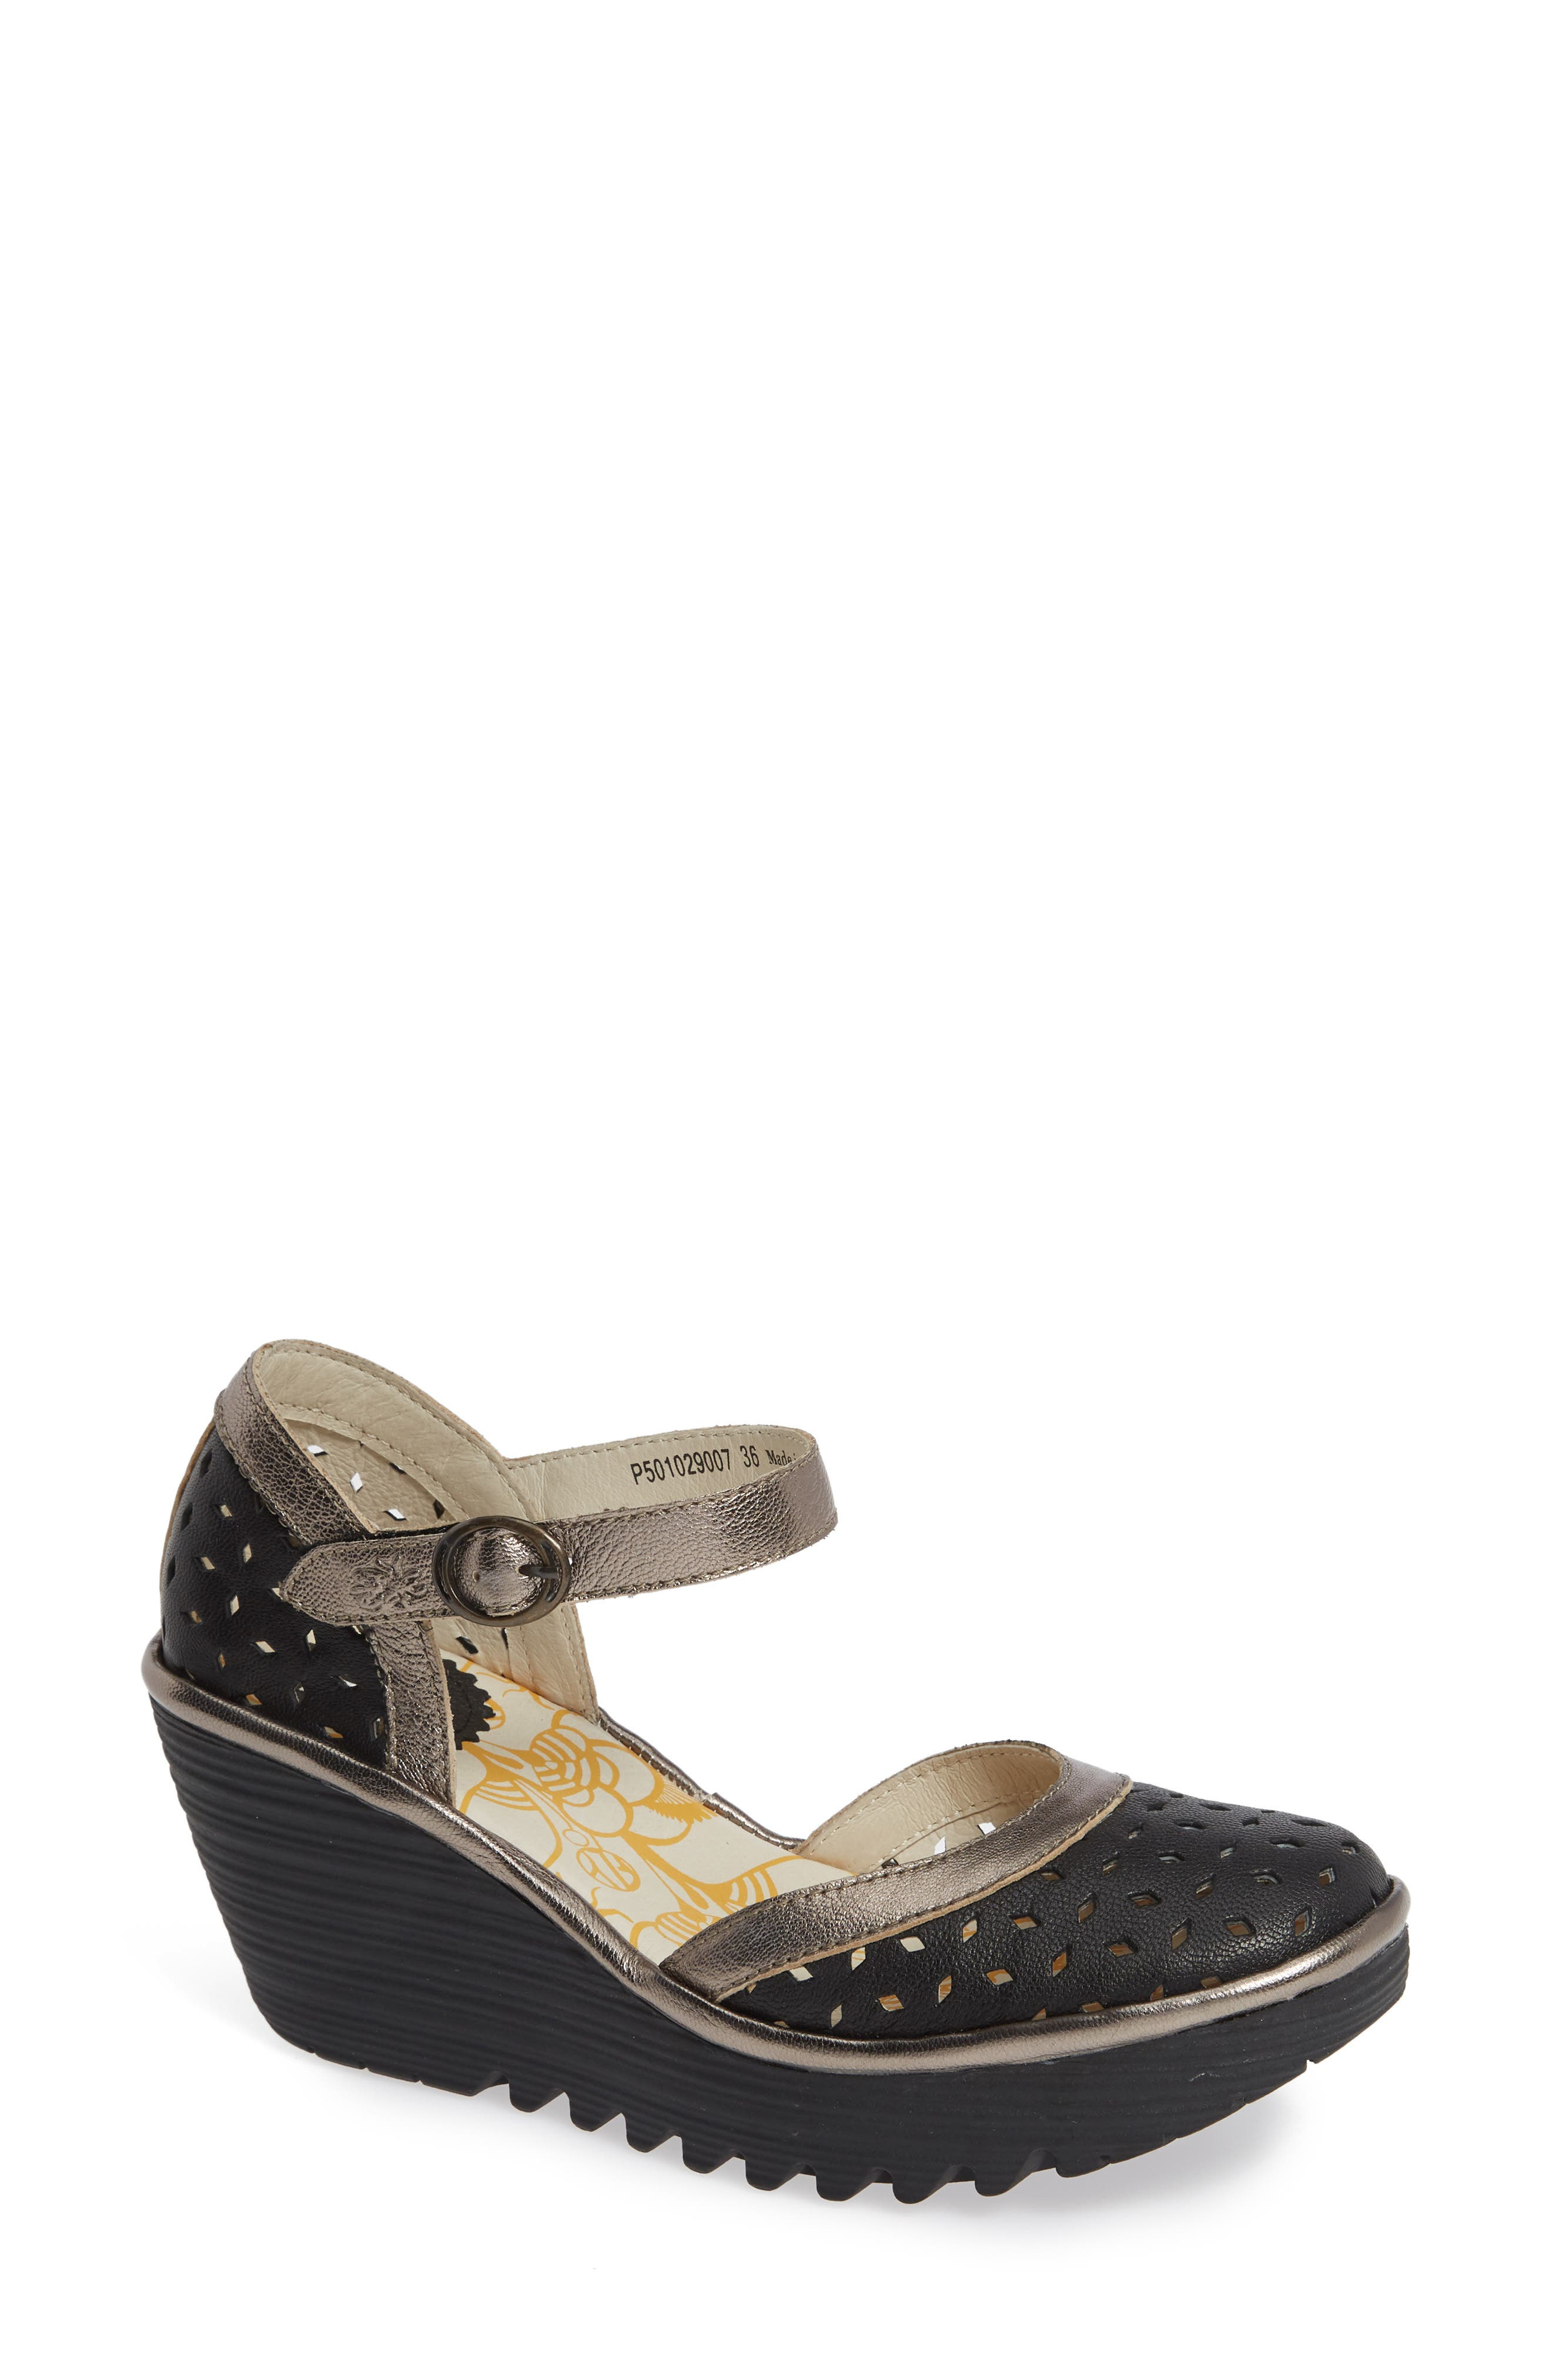 FLY LONDON Yven Wedge, Main, color, BLACK/ BRONZE LEATHER